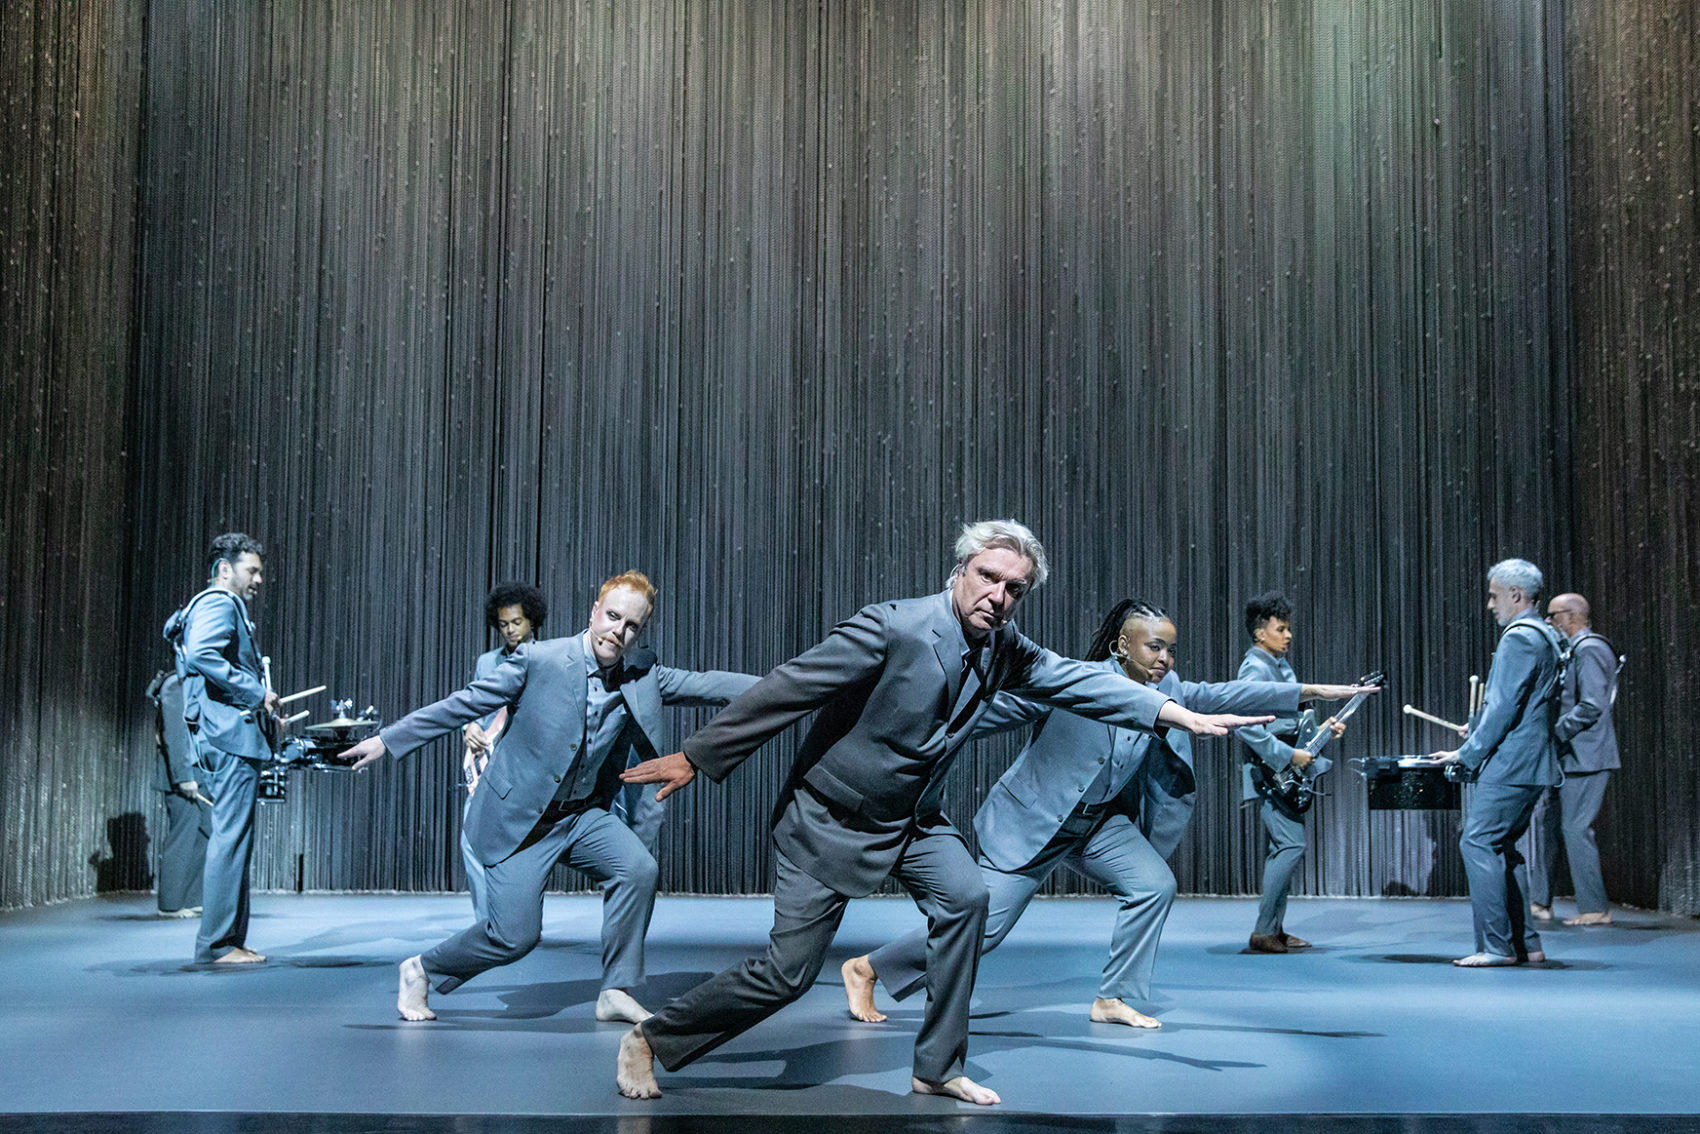 David Byrne's 'American Utopia' Takes Viewers On Musical Journey Of Self Discovery